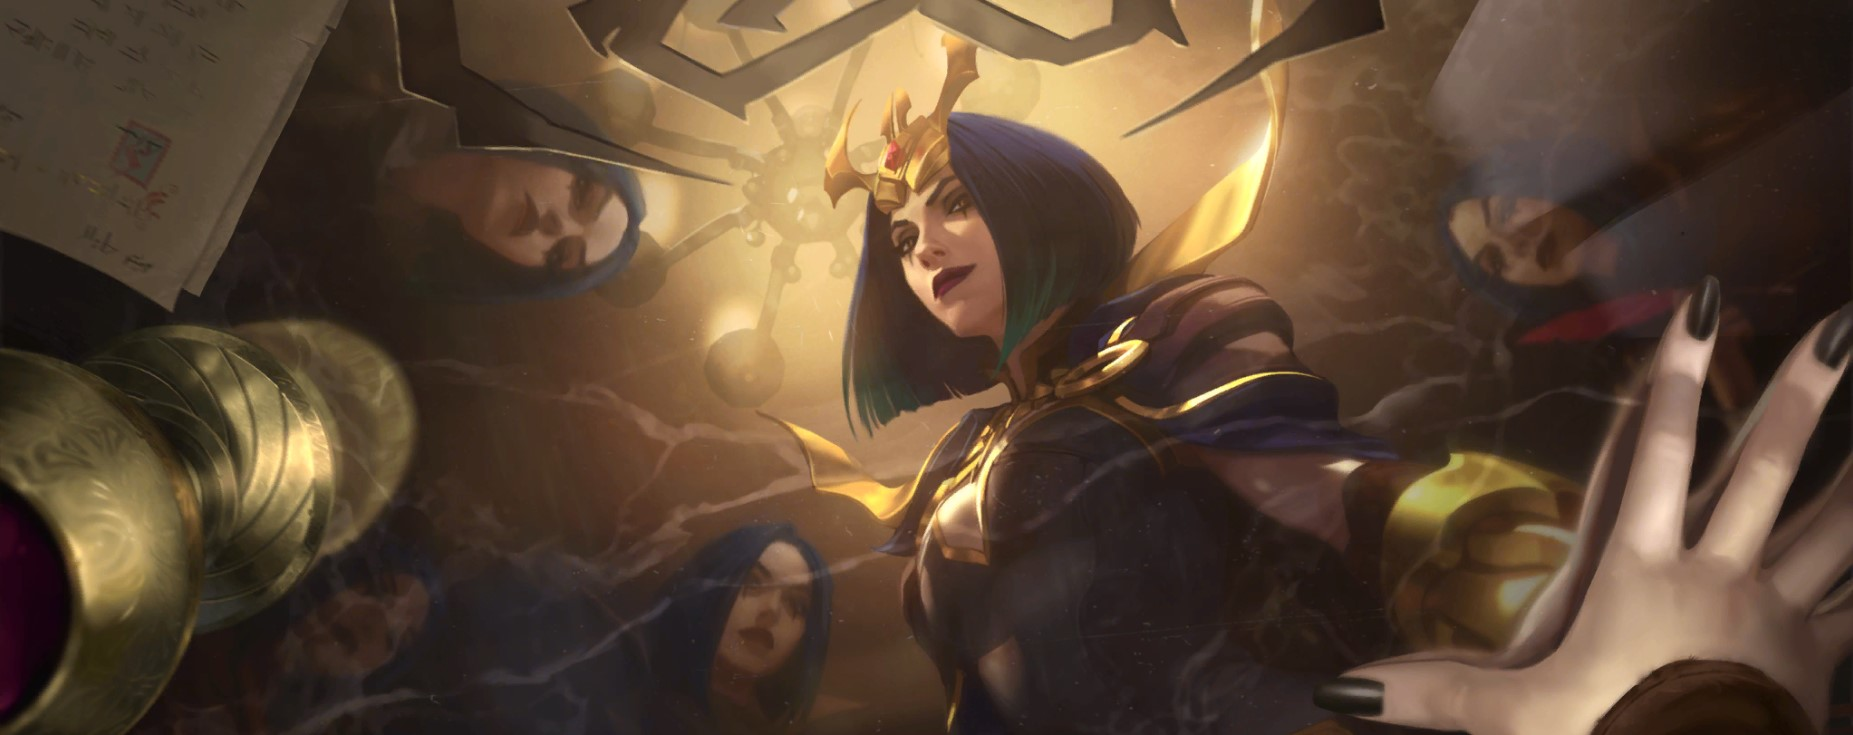 Empires of the Ascended LoR Card Impressions: LeBlanc (Sigil of Malice, Black Rose Spy, and More)